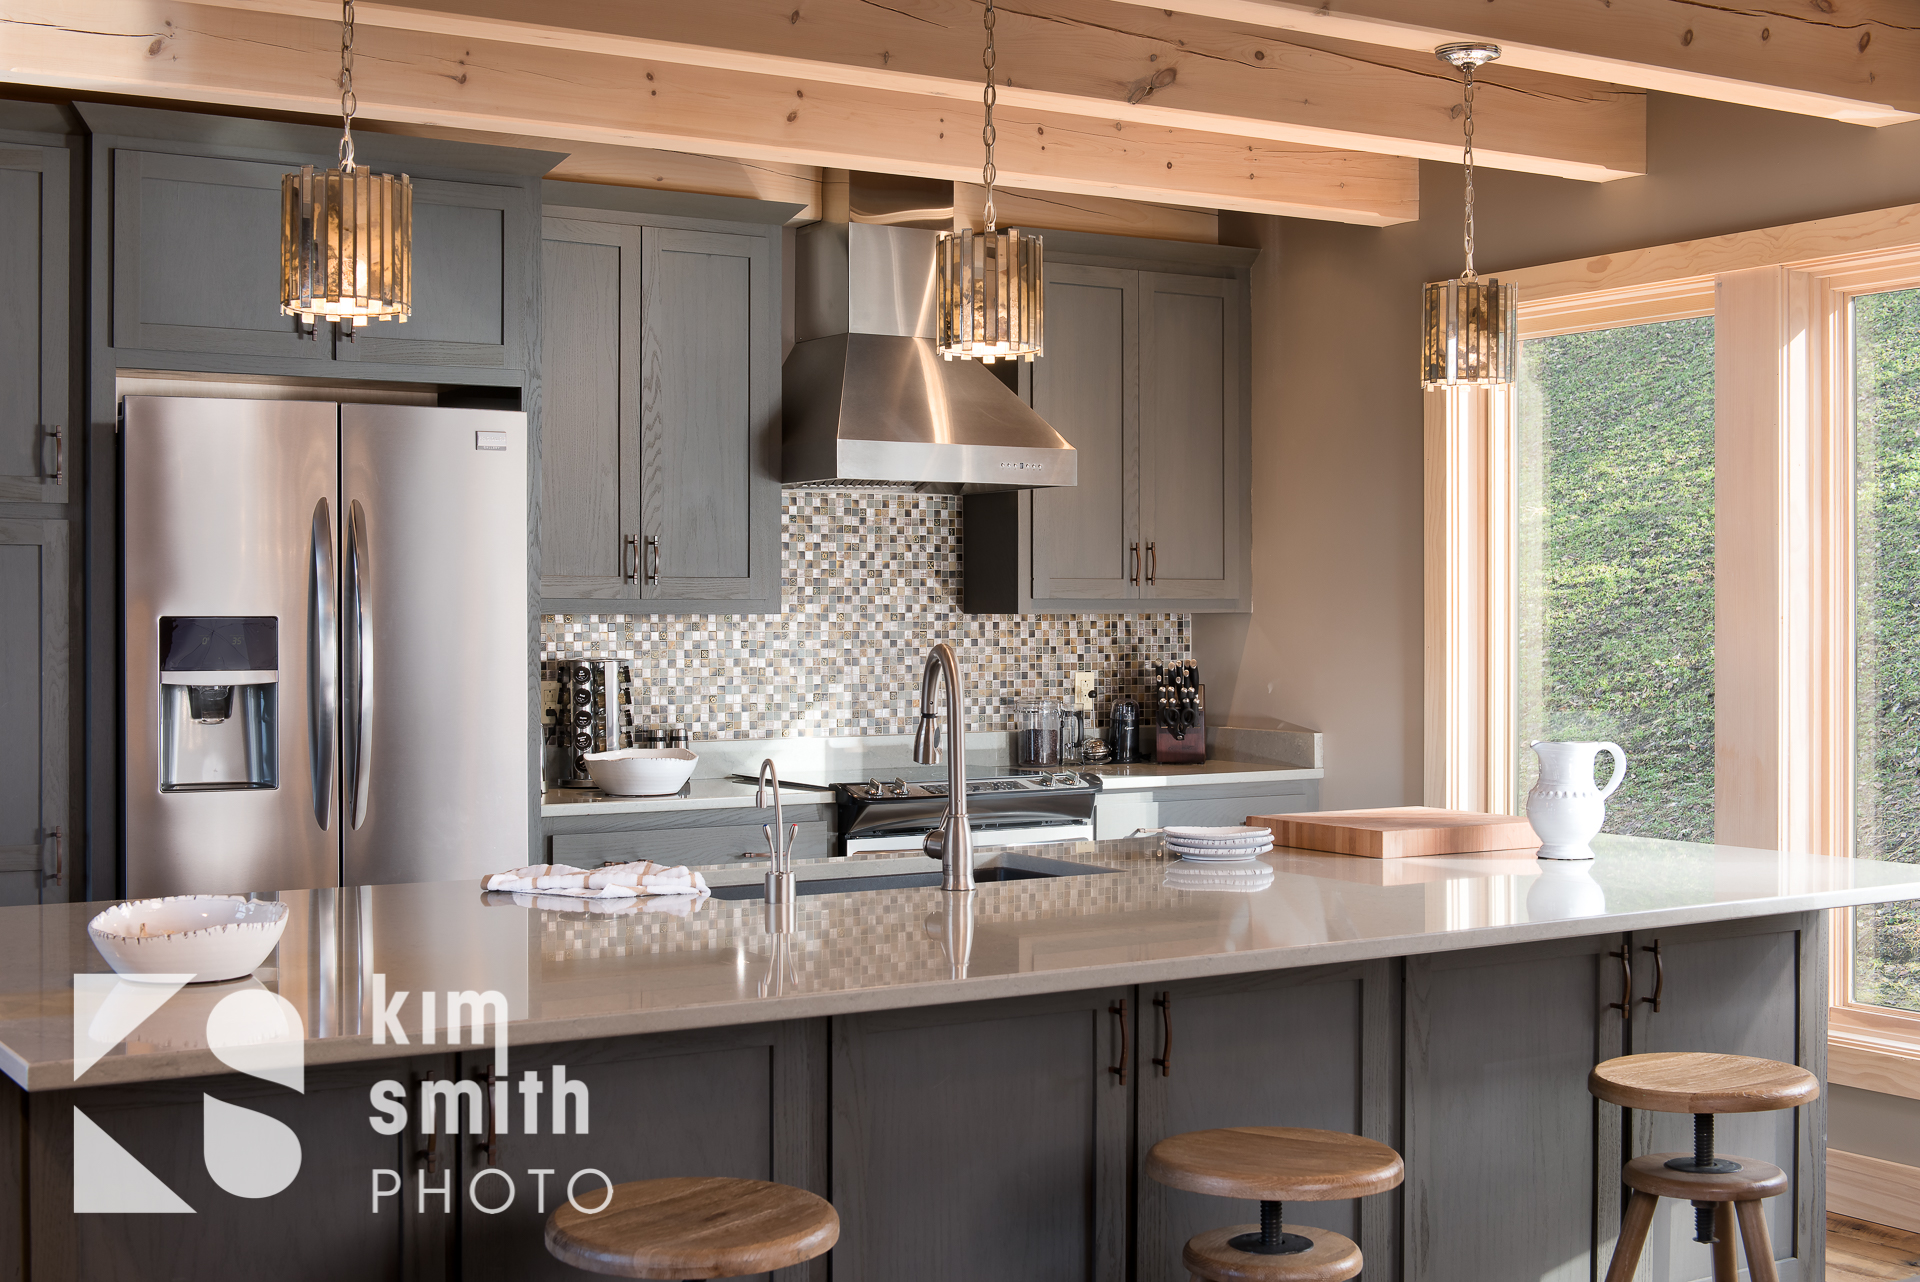 Kitchen + Bath Photographer | Kim Smith Photo | Buffalo New York